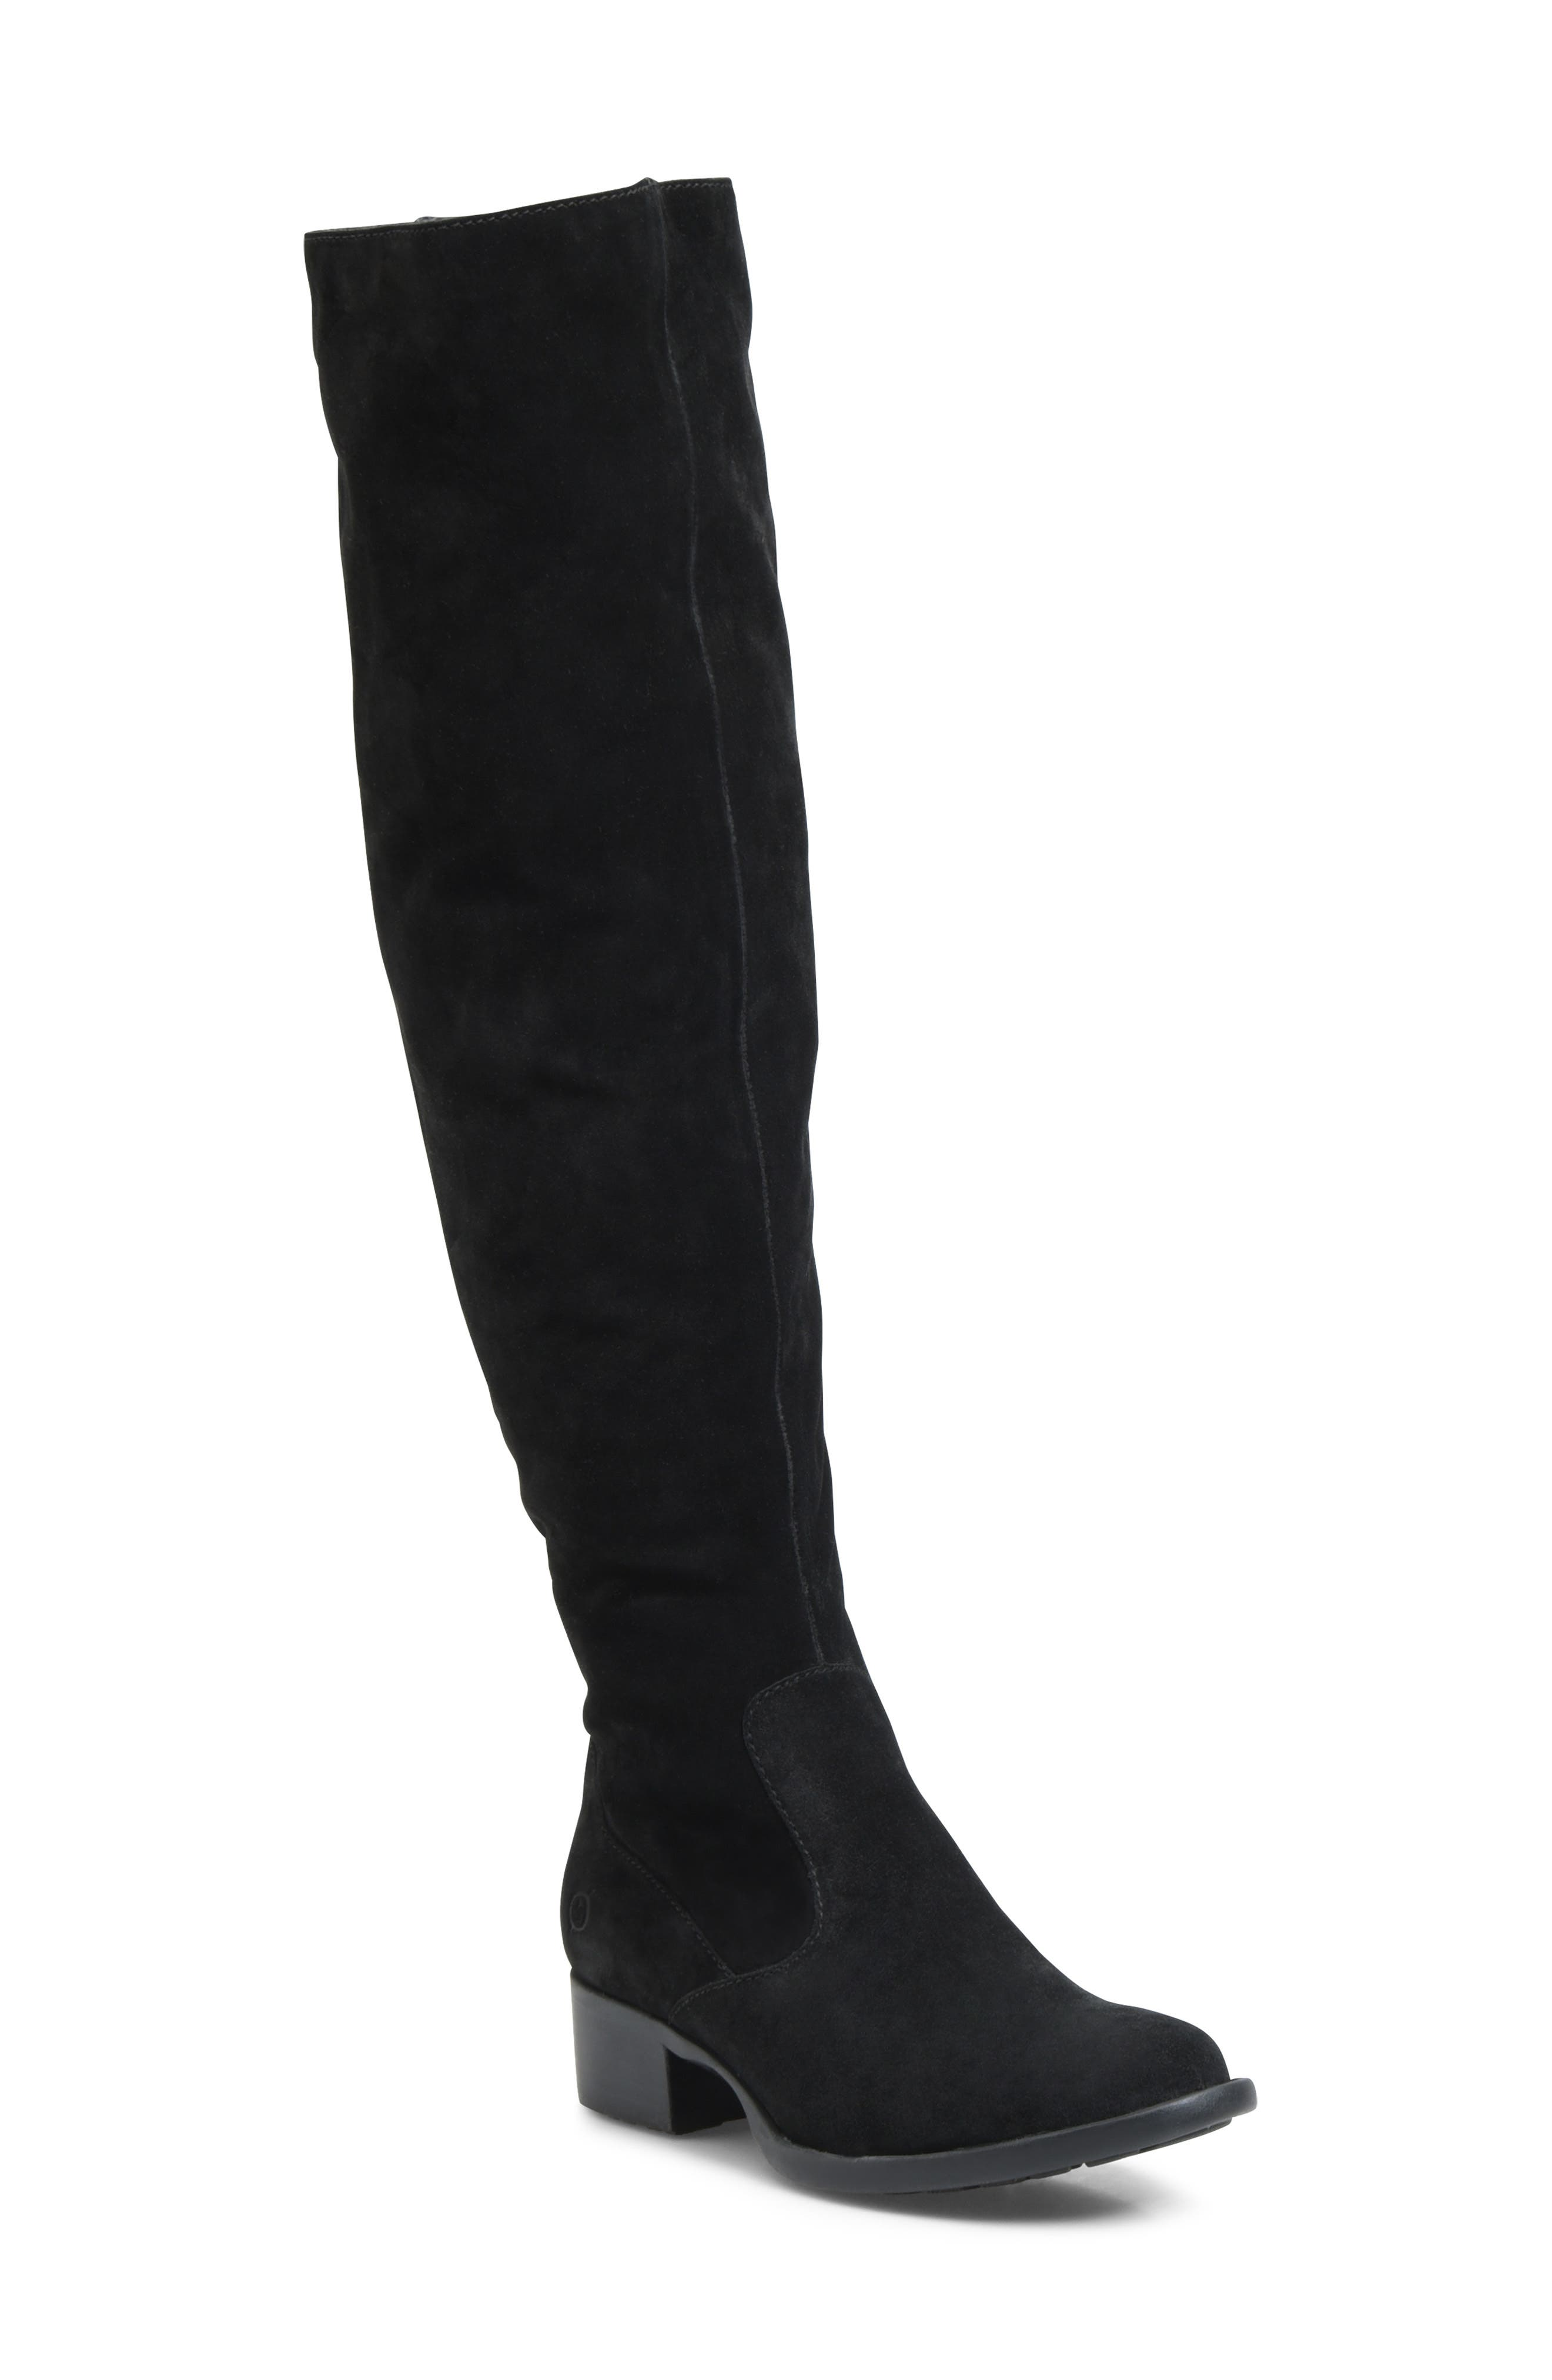 B?rn Cricket Over The Knee Boot